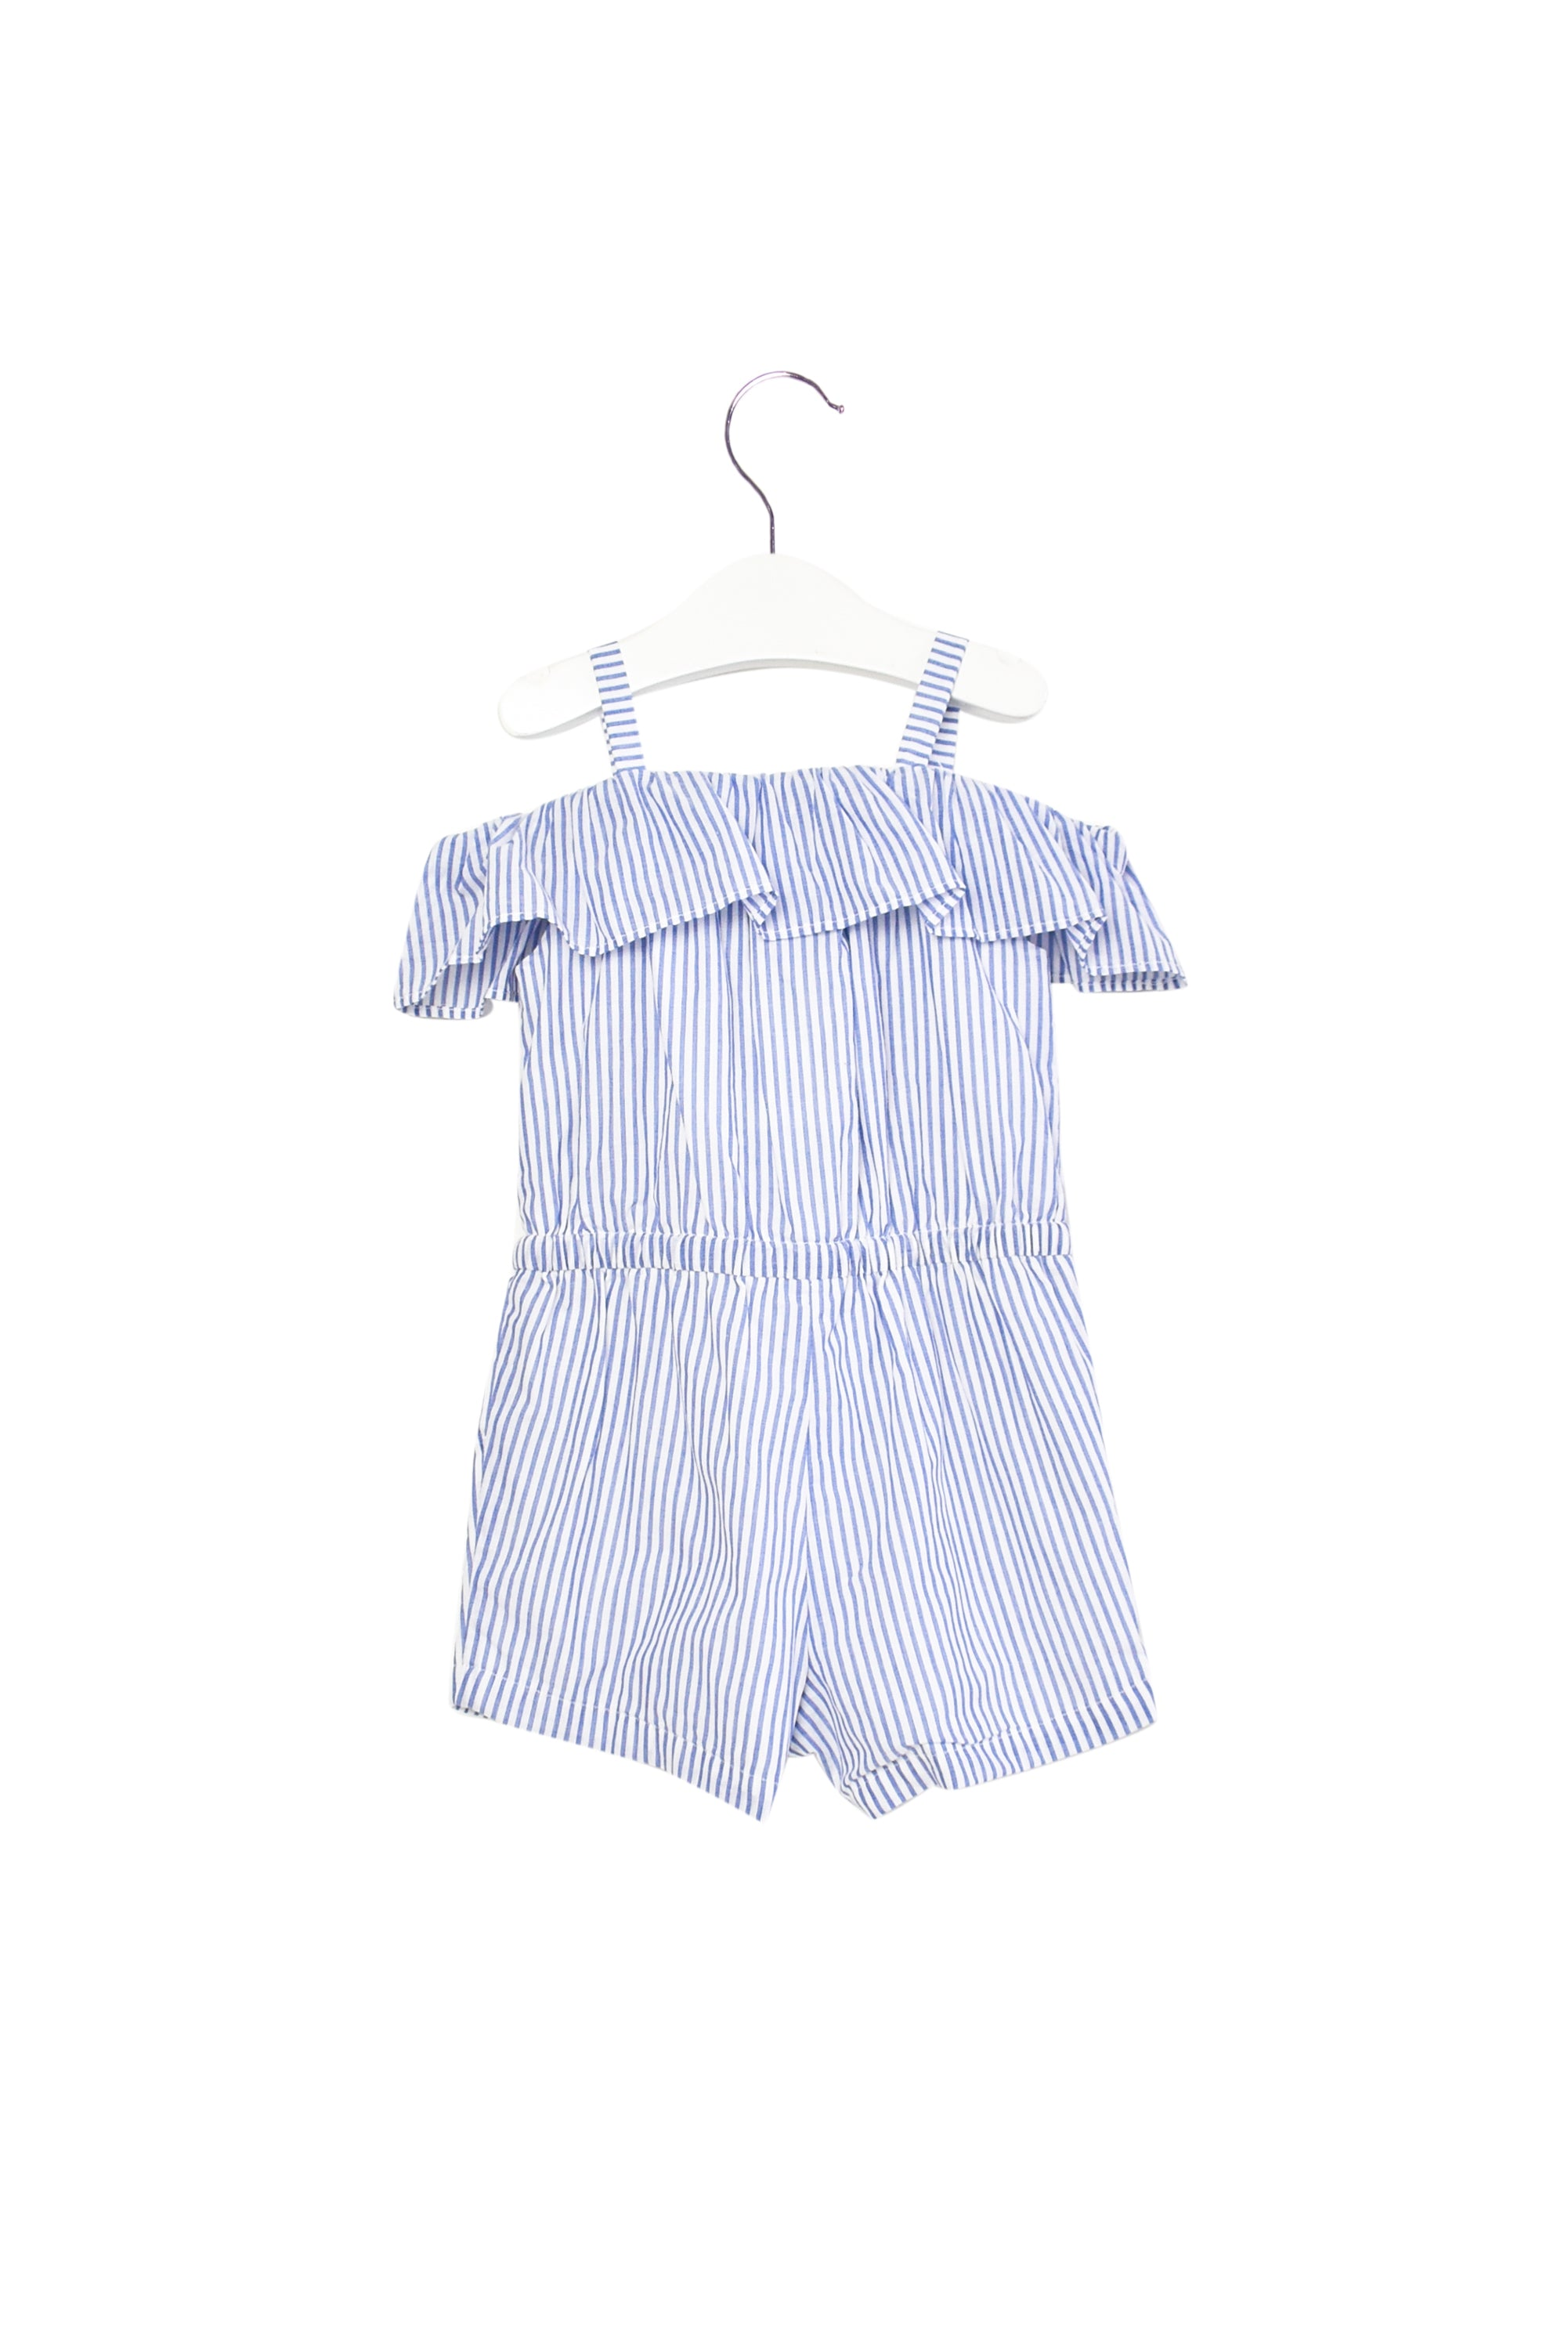 10011733 Janie & Jack Baby ~ Romper 12-18M at Retykle